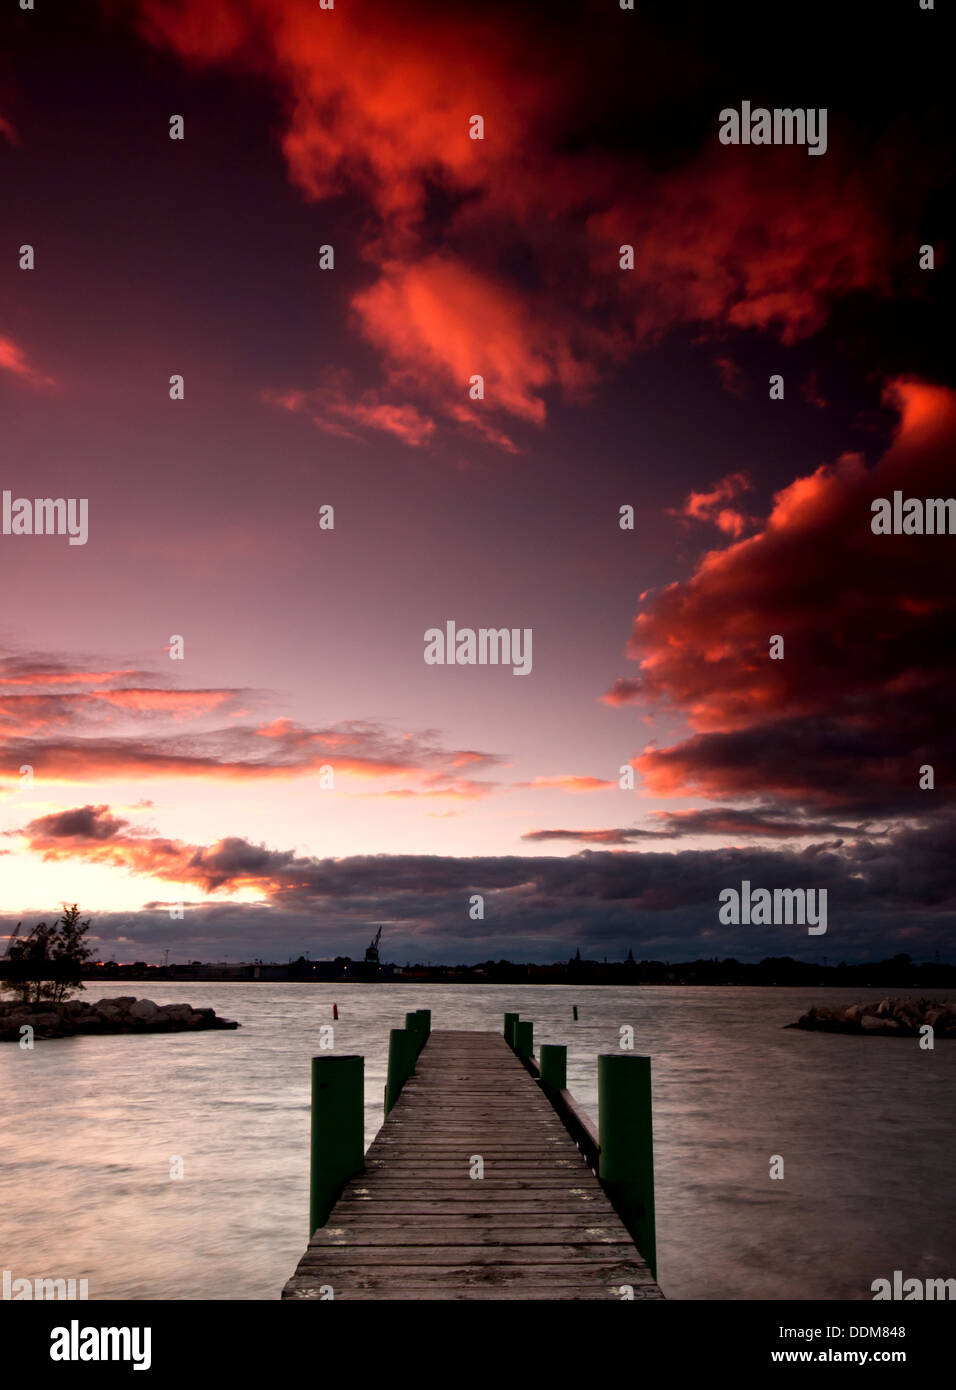 The sun setting over a dock along the Detroit River in Windsor, Ontario. - Stock Image